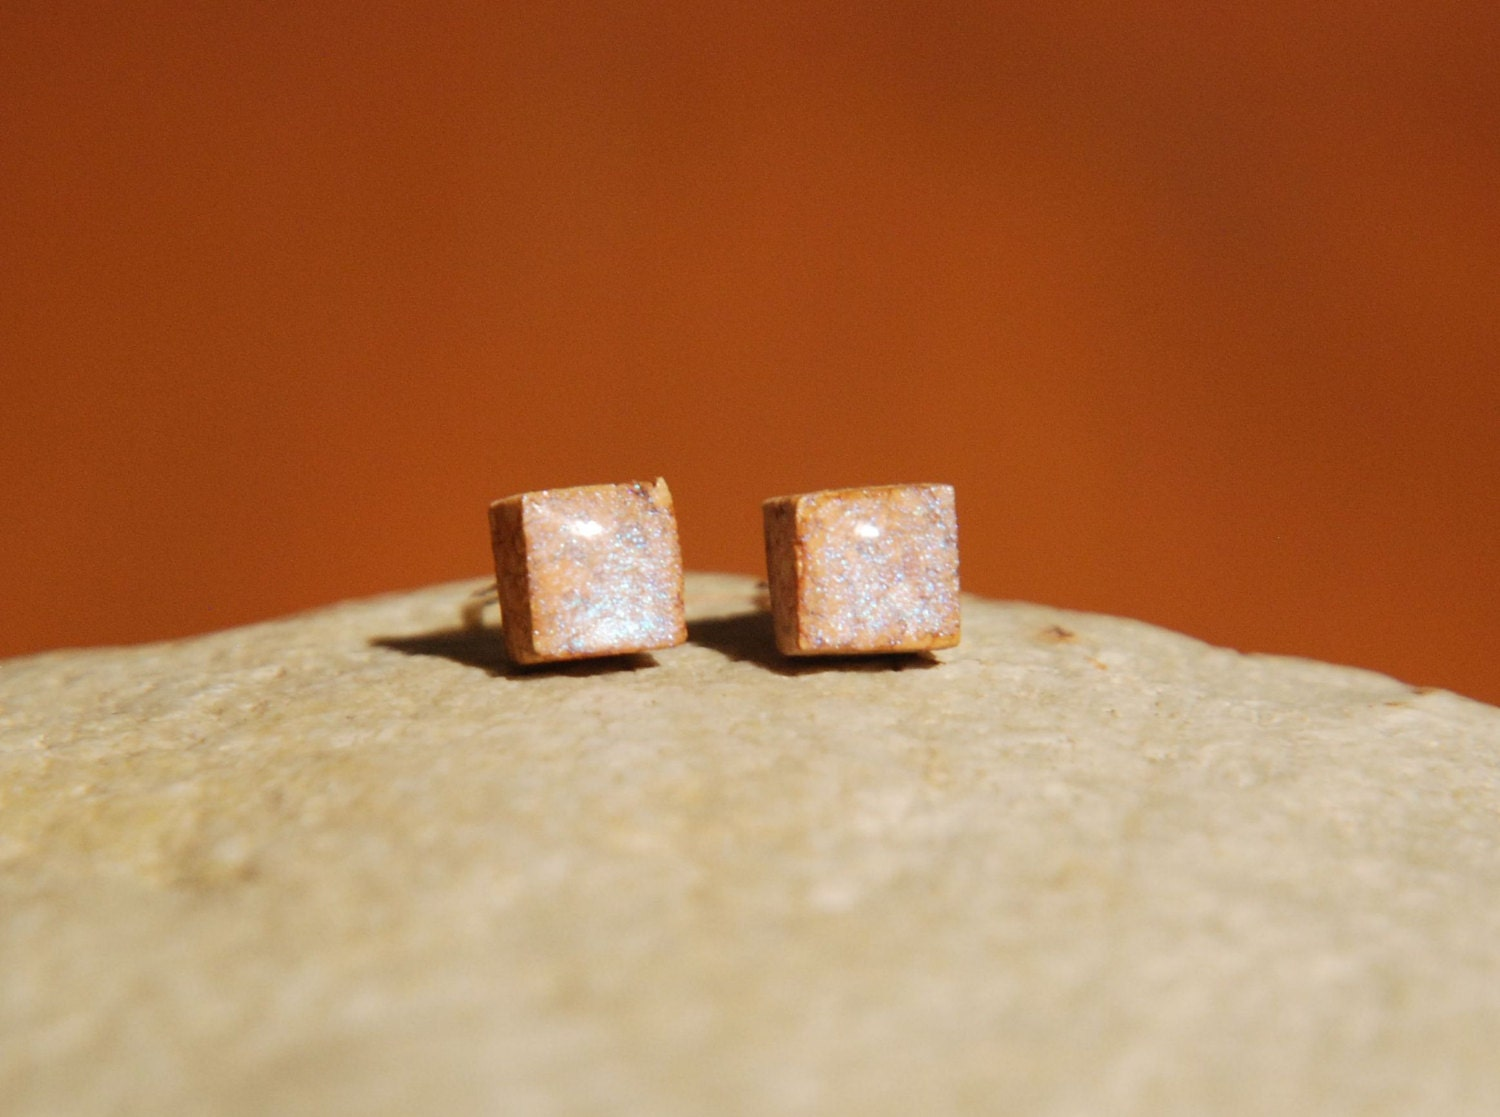 Cork jewelry � Stud earrings � Resin studs � Nature jewelry � Natural earrings � Little studs � Opalescent earrings - Eco friendly jewelry - BalanceAtelier